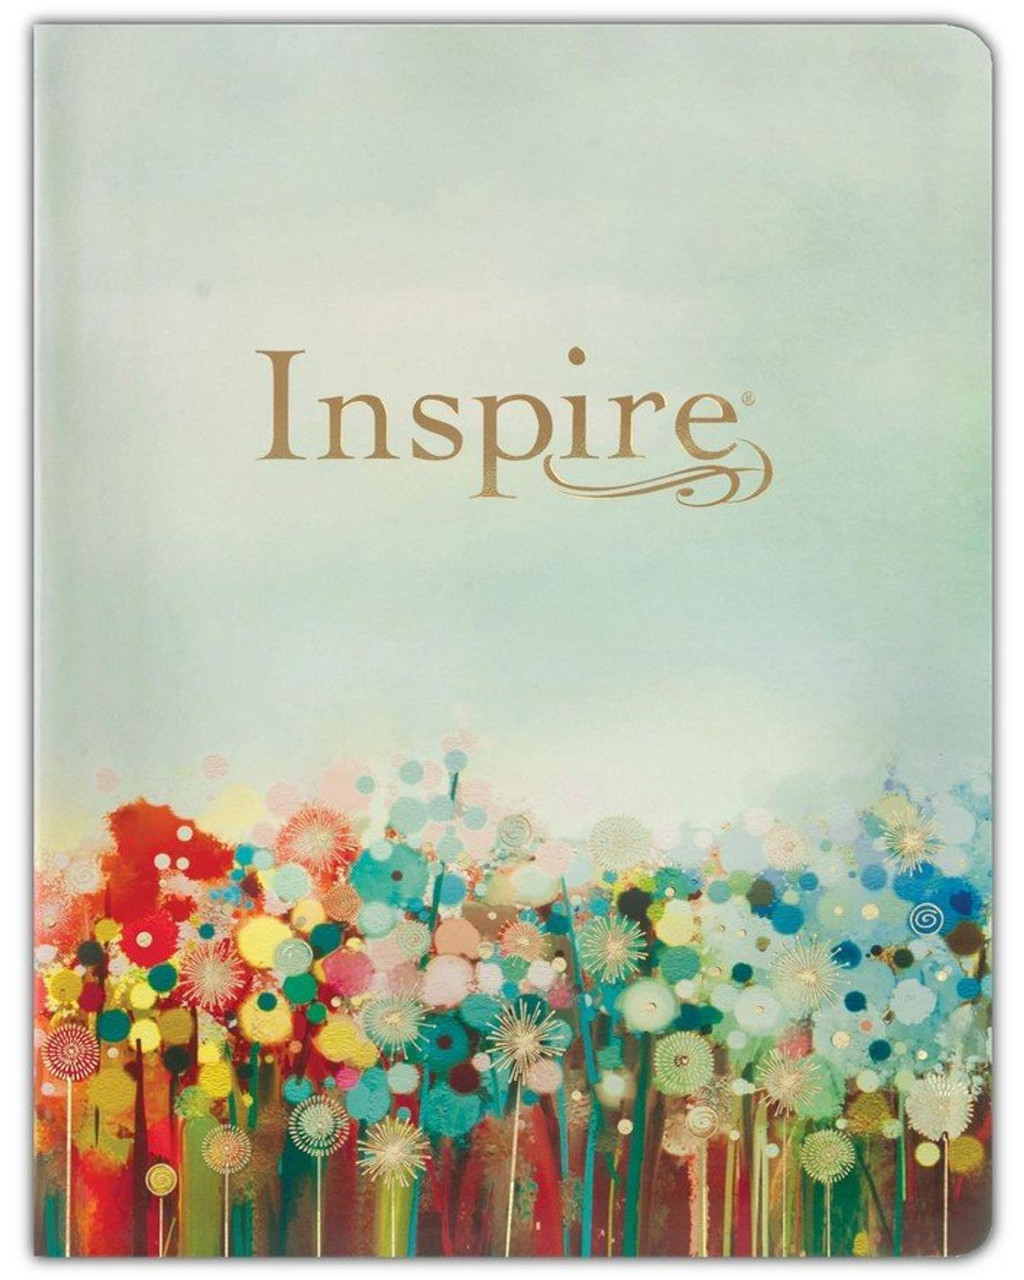 NLT Large-Print Inspire Bible: The Bible for Coloring & Creative Journaling - Imitation Leather